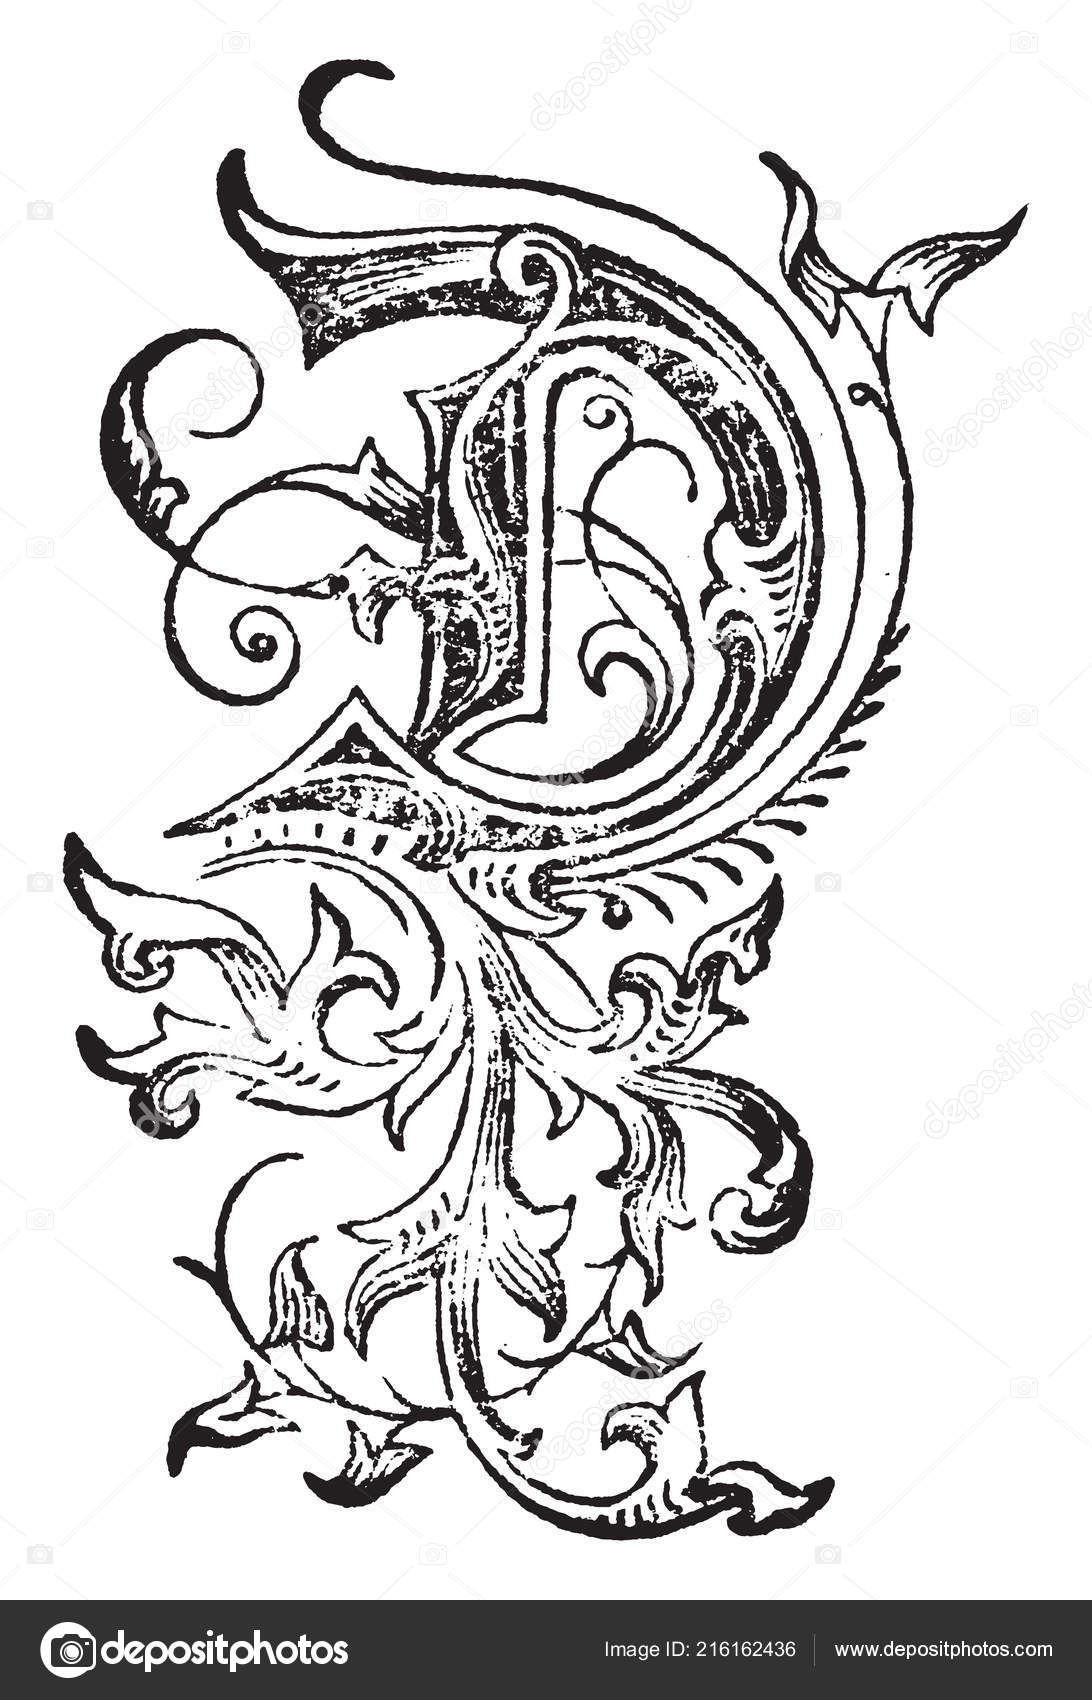 c68ac83a6 A decorative capital letter D surrounded by leaves and vines, vintage line  drawing or engraving illustration– stock illustration